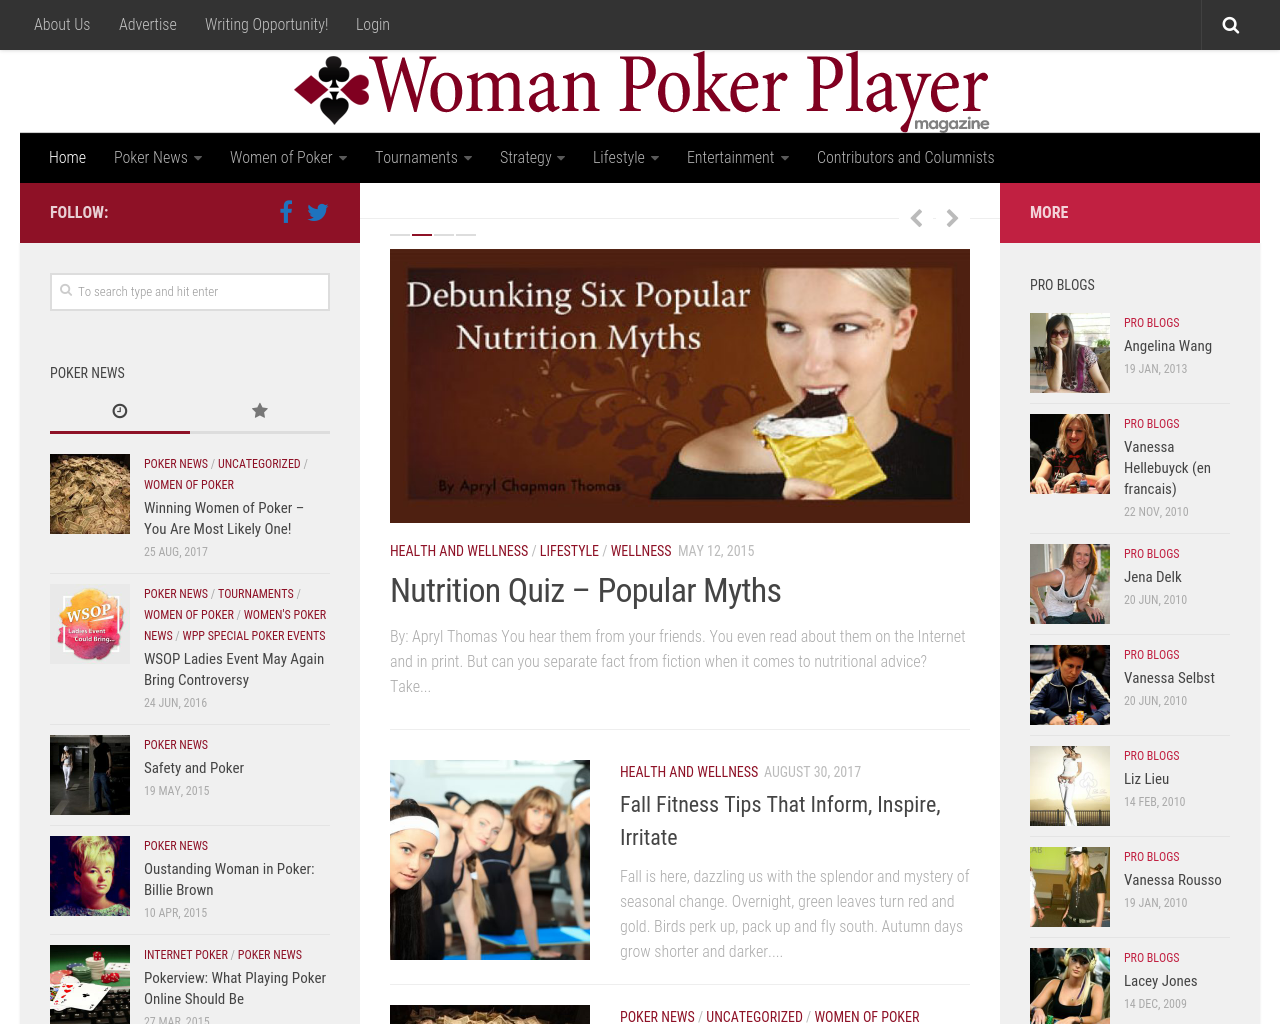 Woman-Poker-Player-Magazine-Advertising-Reviews-Pricing